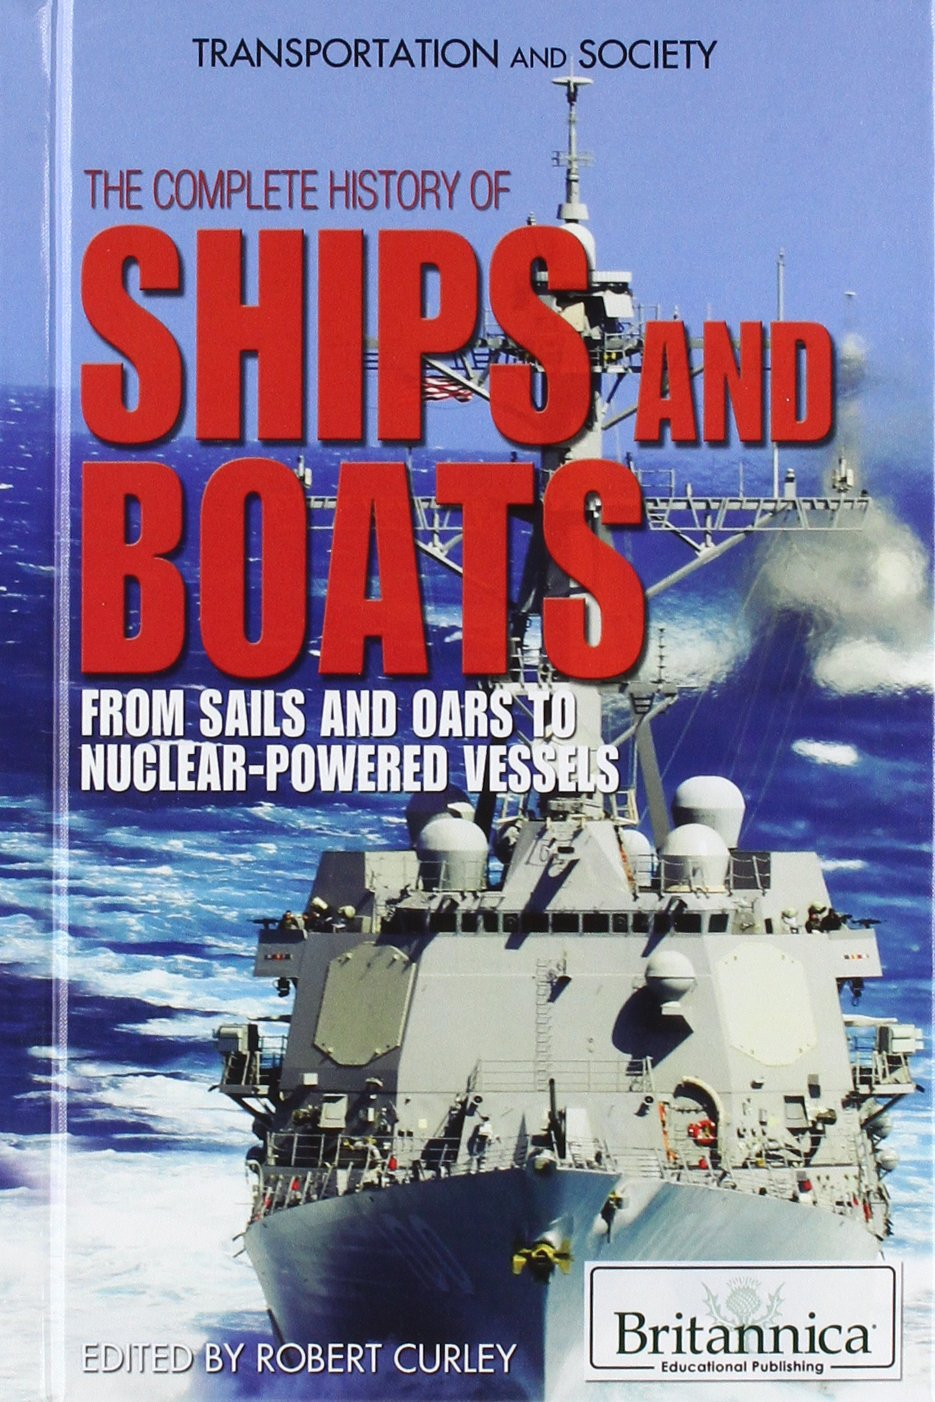 Download The Complete History of Ships and Boats: From Sails and Oars to Nuclear-Powered Vessels (Transportation and Society) pdf